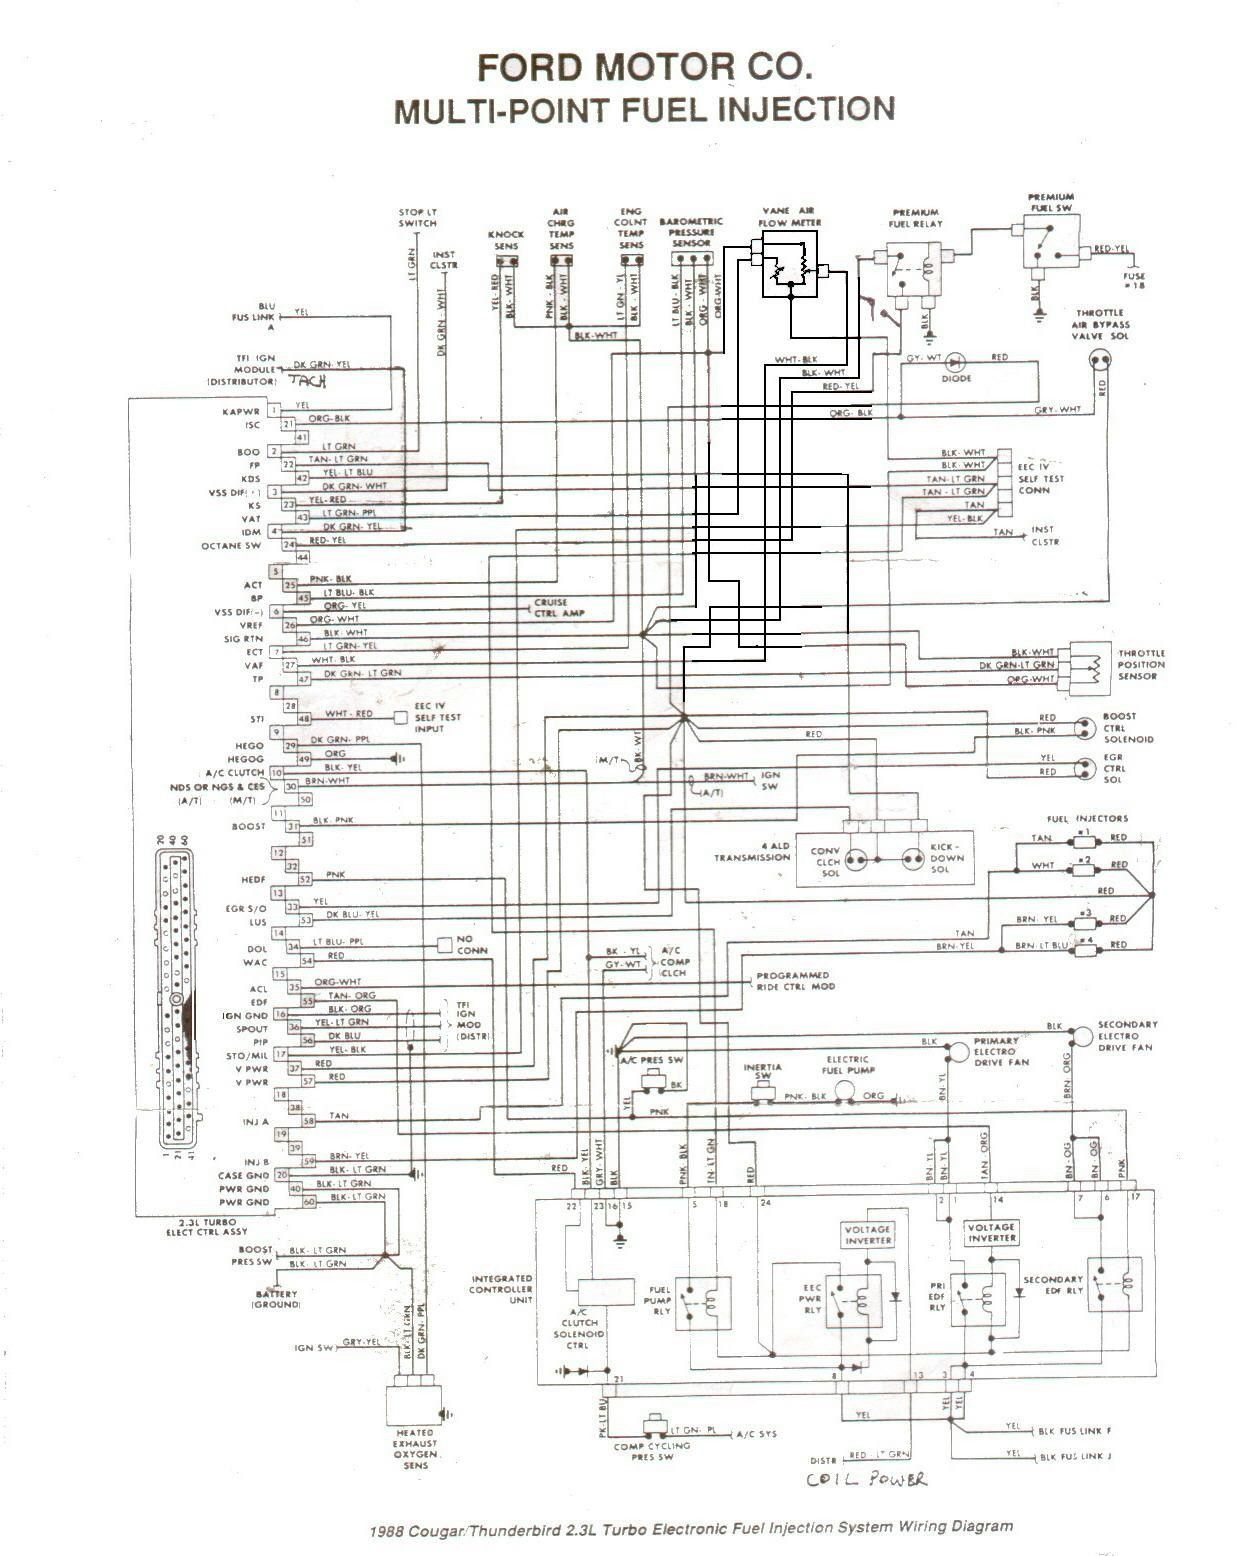 Lovely Alternator Wiring Diagram Ford Ranger Diagrams Digramssample Diagramimages Wiringdiagramsample Wiringdiagram Ford Ranger Ford Ranger Raptor Diagram